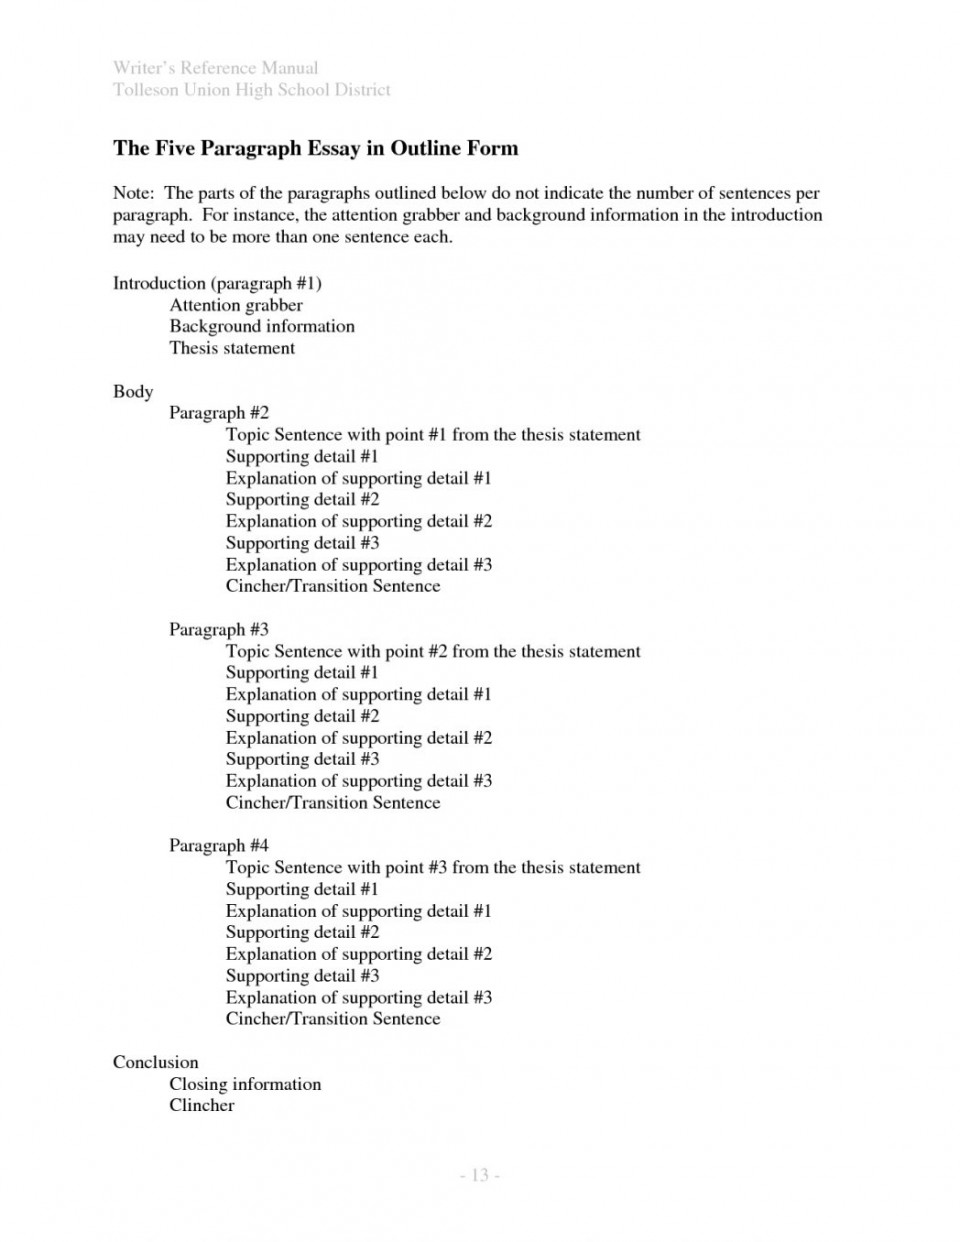 014 Interesting Topics For Research Paper High School An Outline Argumentative Essay Abortion Frightening A Students 960